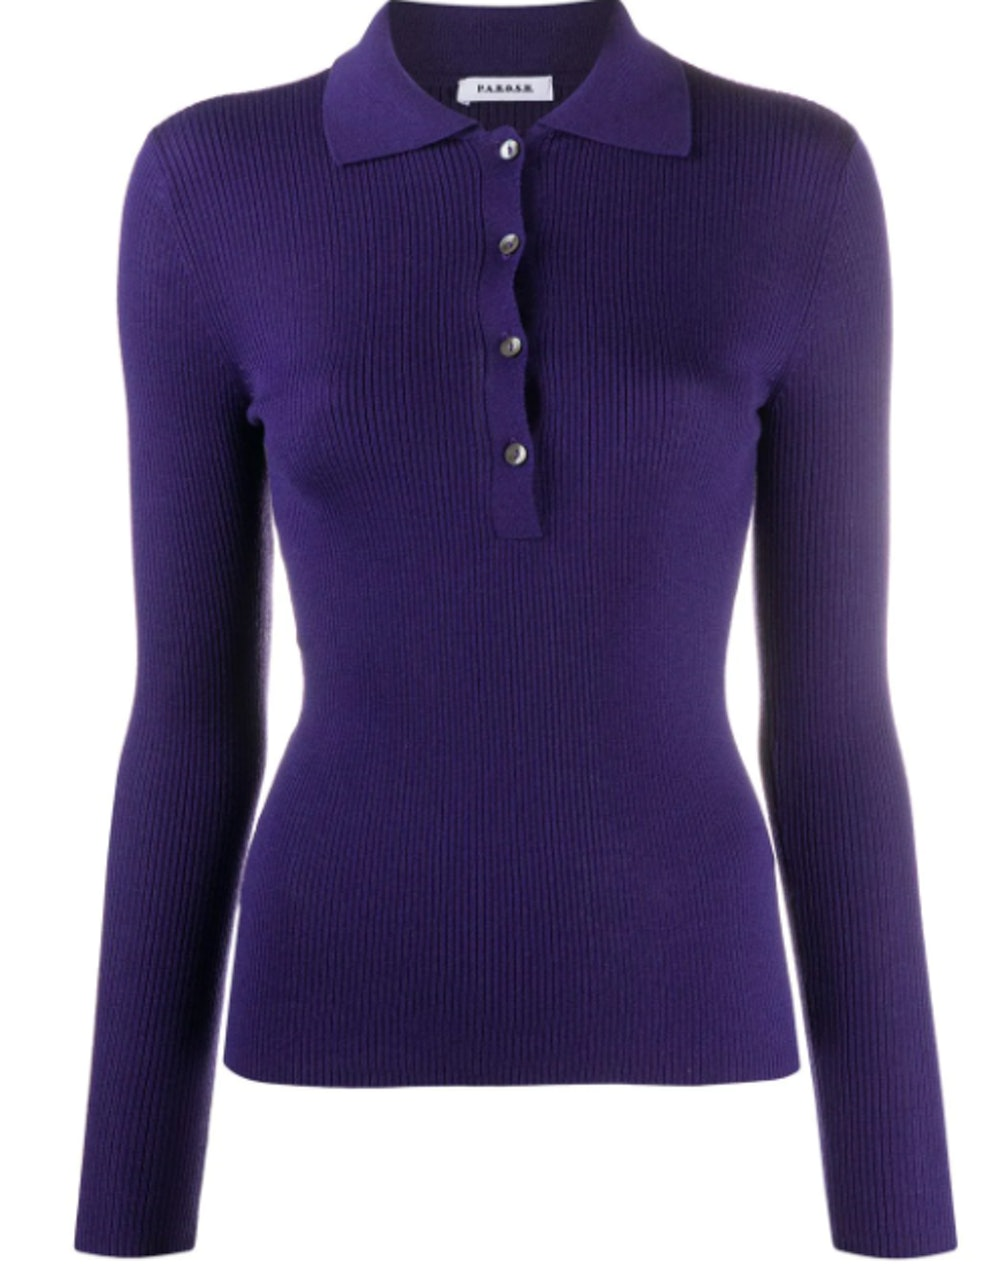 Buttoned Wool Knitted Top